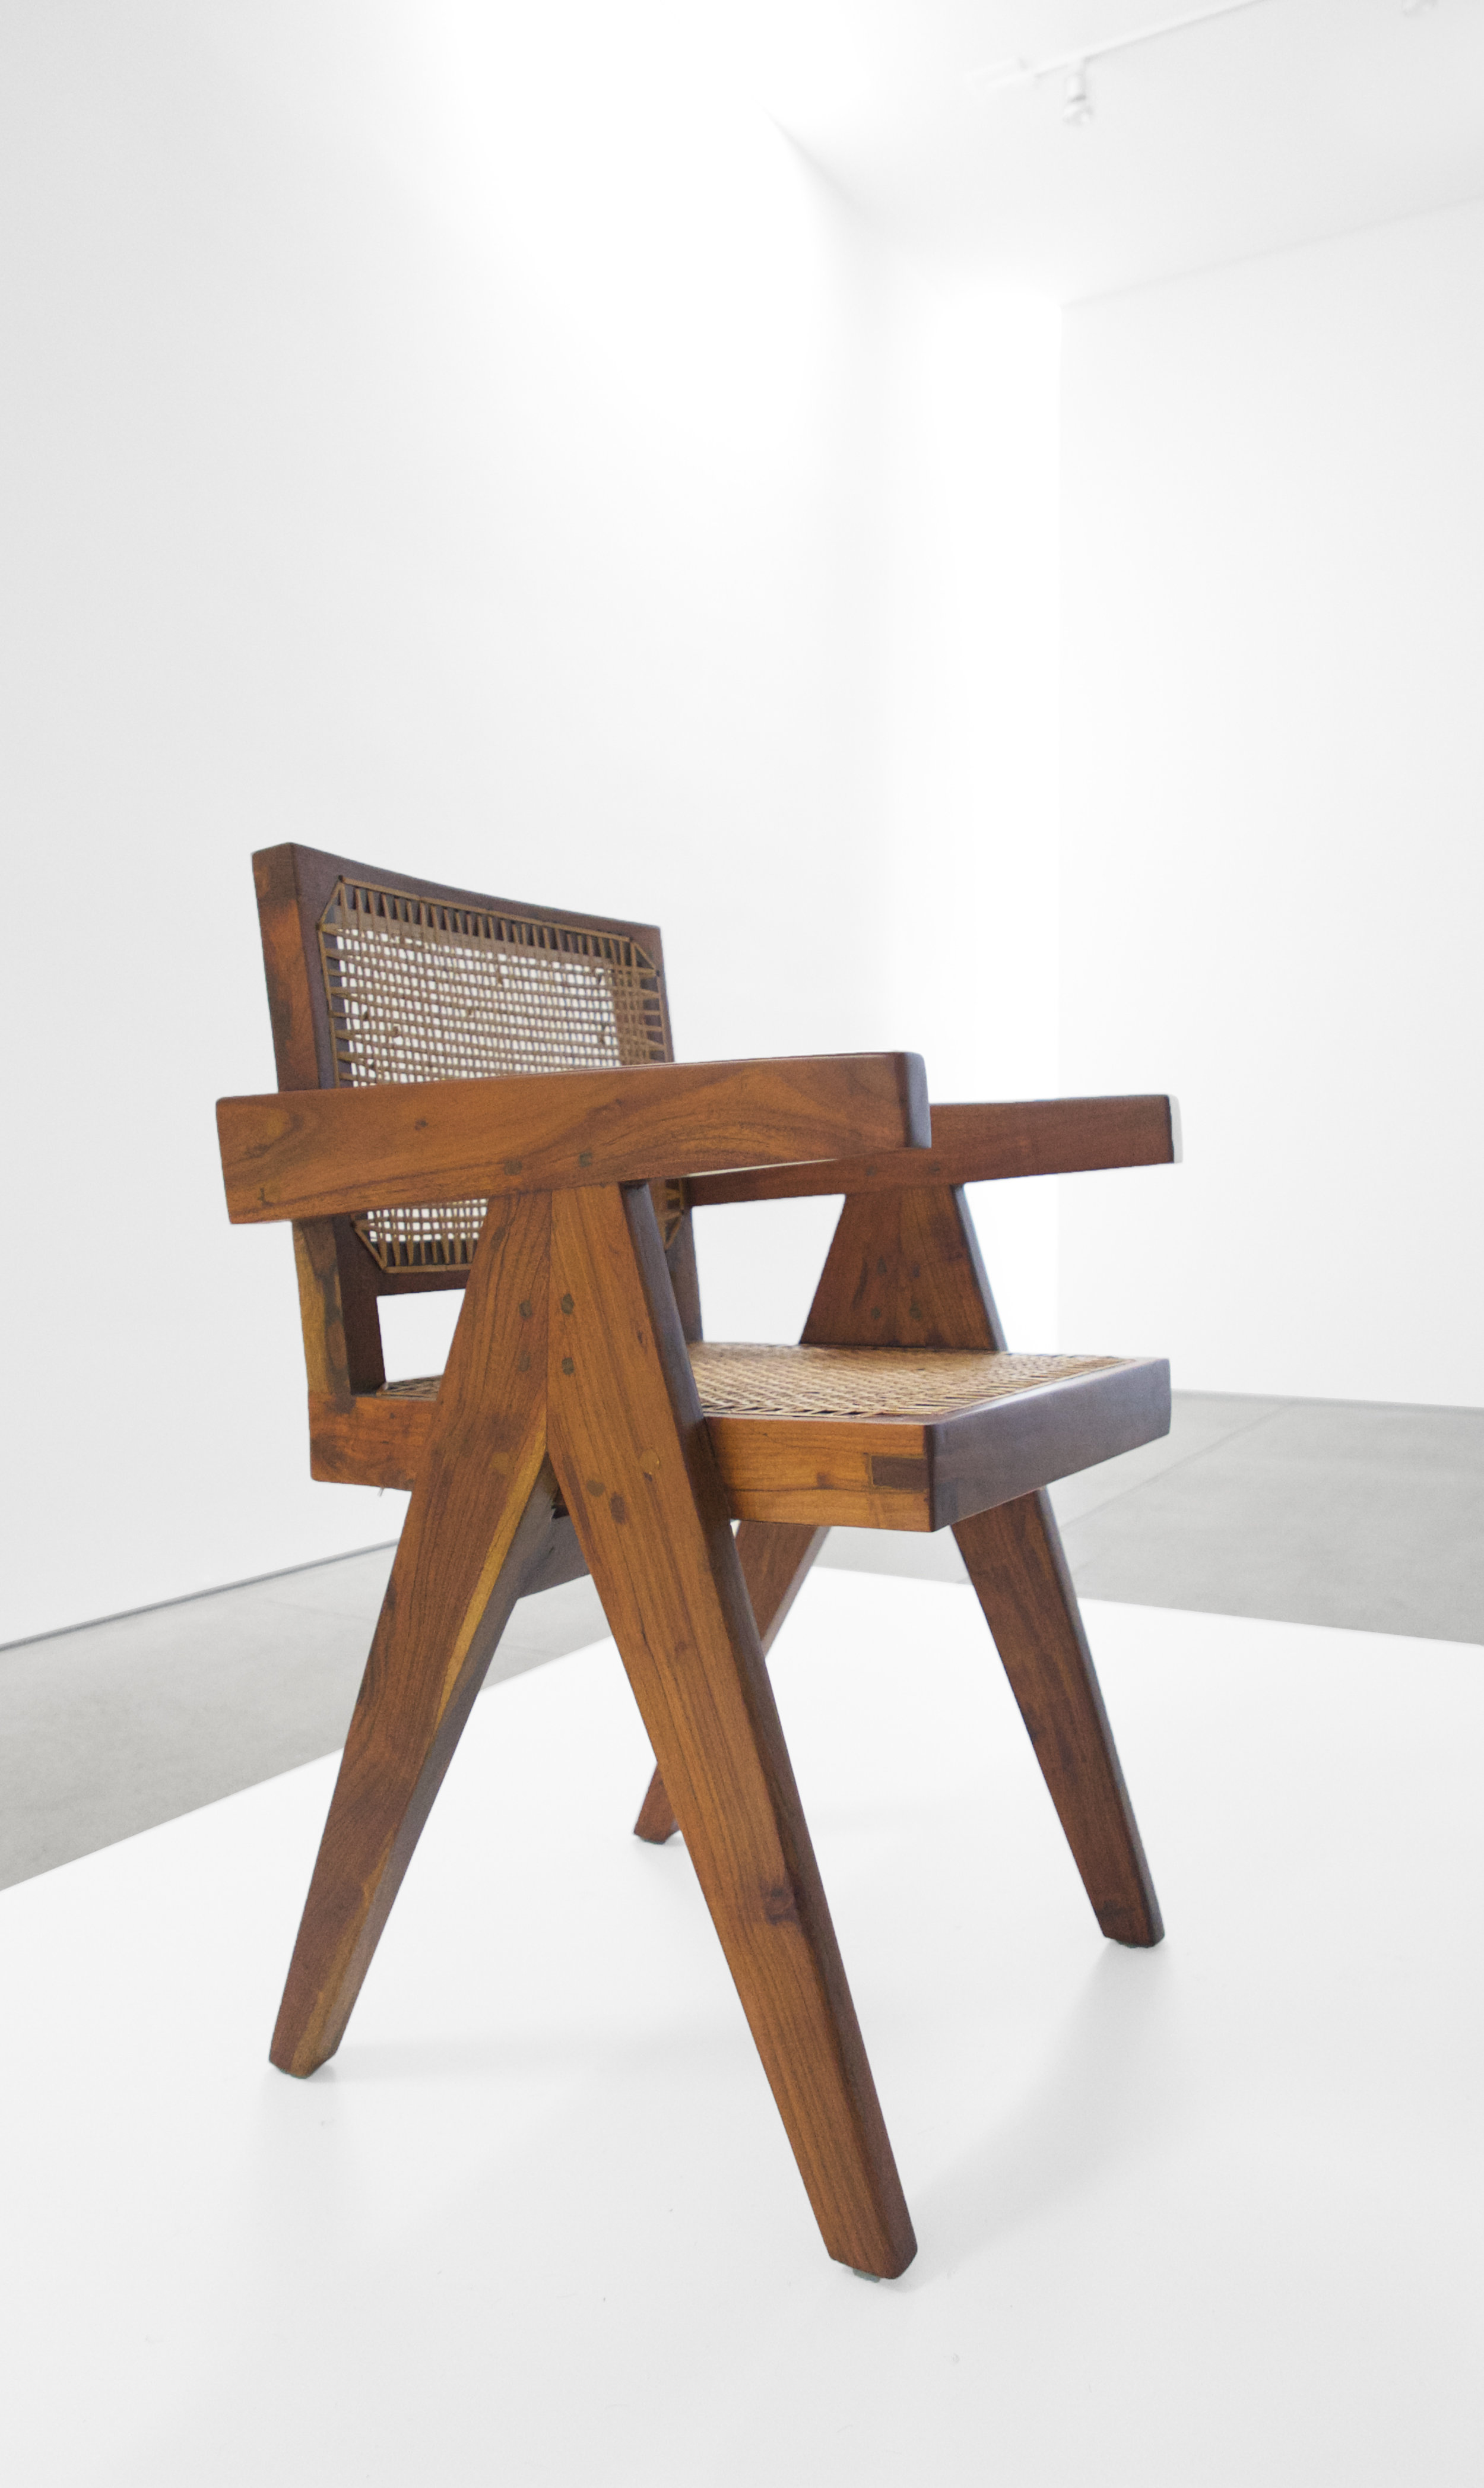 Pierre Jeanneret, Teak Conference Chair from the City of Chandigarh, India, c. 1952, 31 H x 18 W x 19.75 D inches_5.jpg